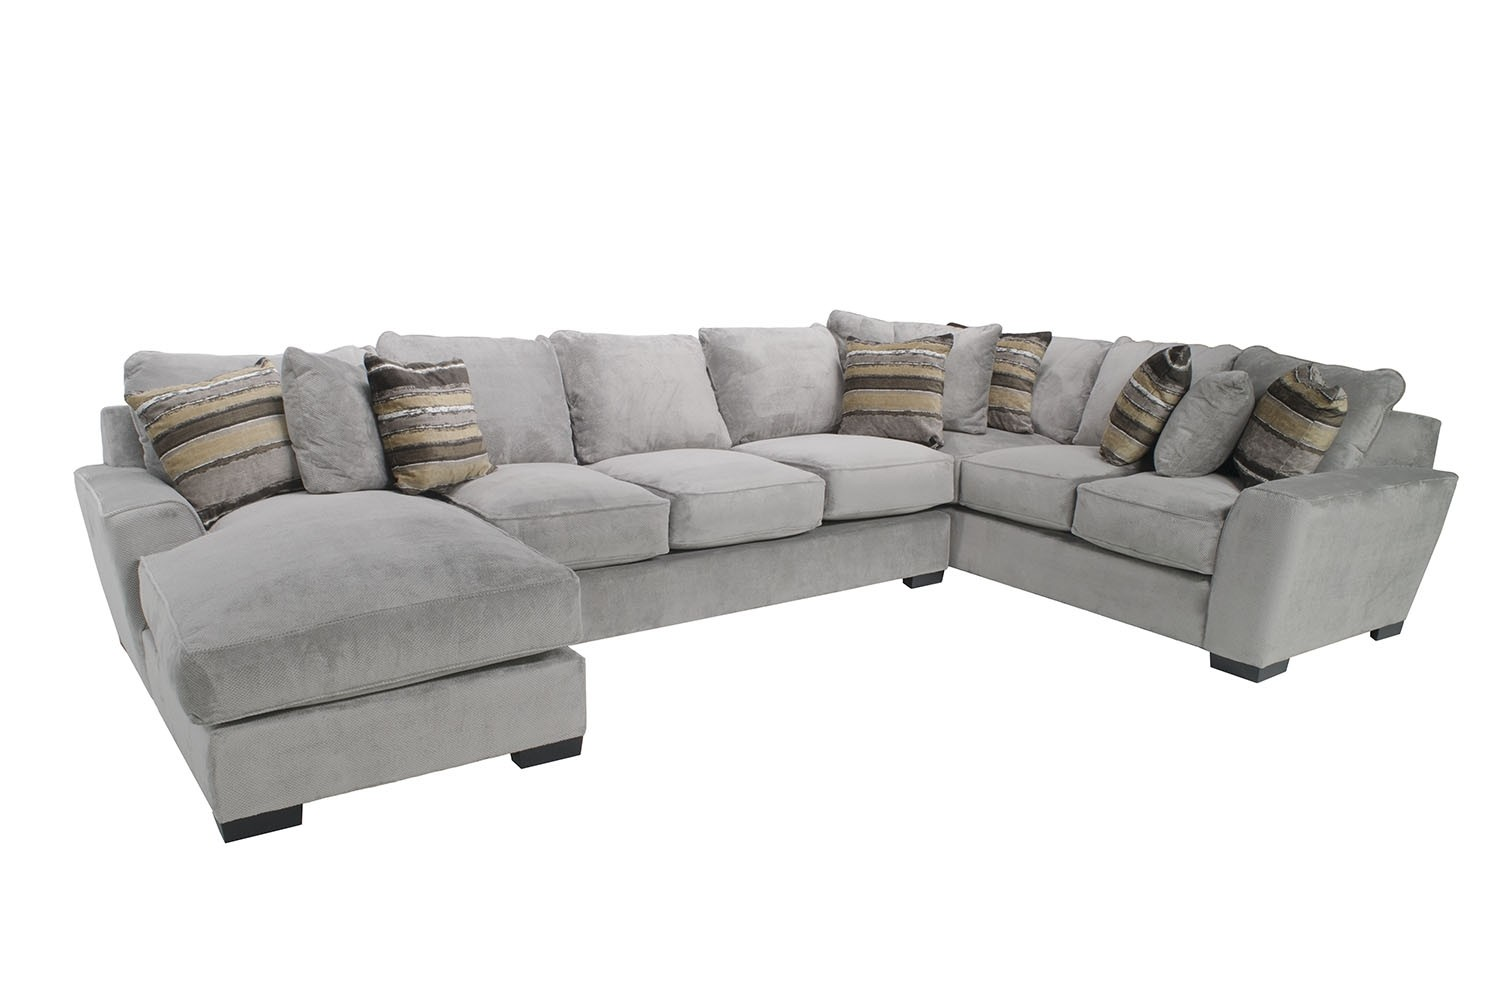 Merveilleux Oracle Left Facing Chaise Sectional Media Image 1 ...